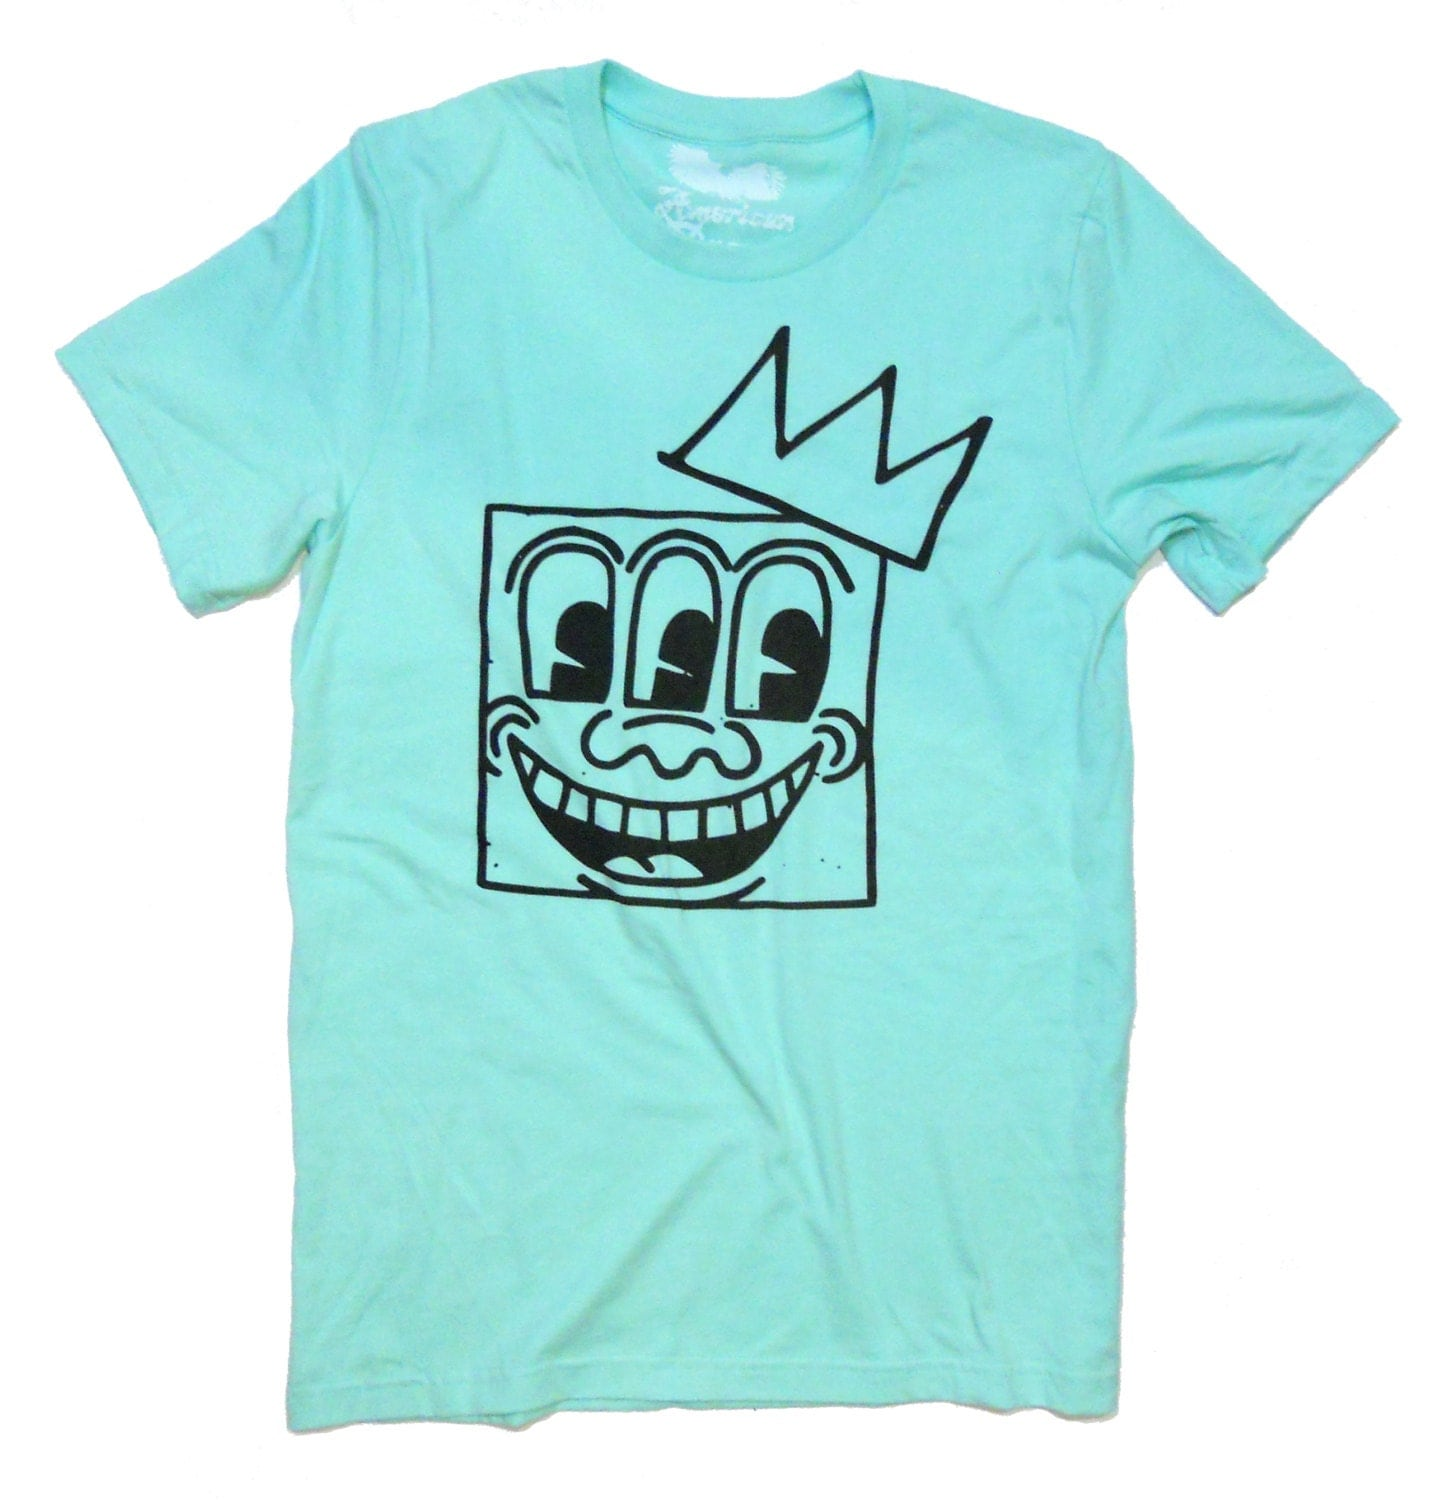 art t shirt keith haring 3 eyes basquiat crown t shirt. Black Bedroom Furniture Sets. Home Design Ideas